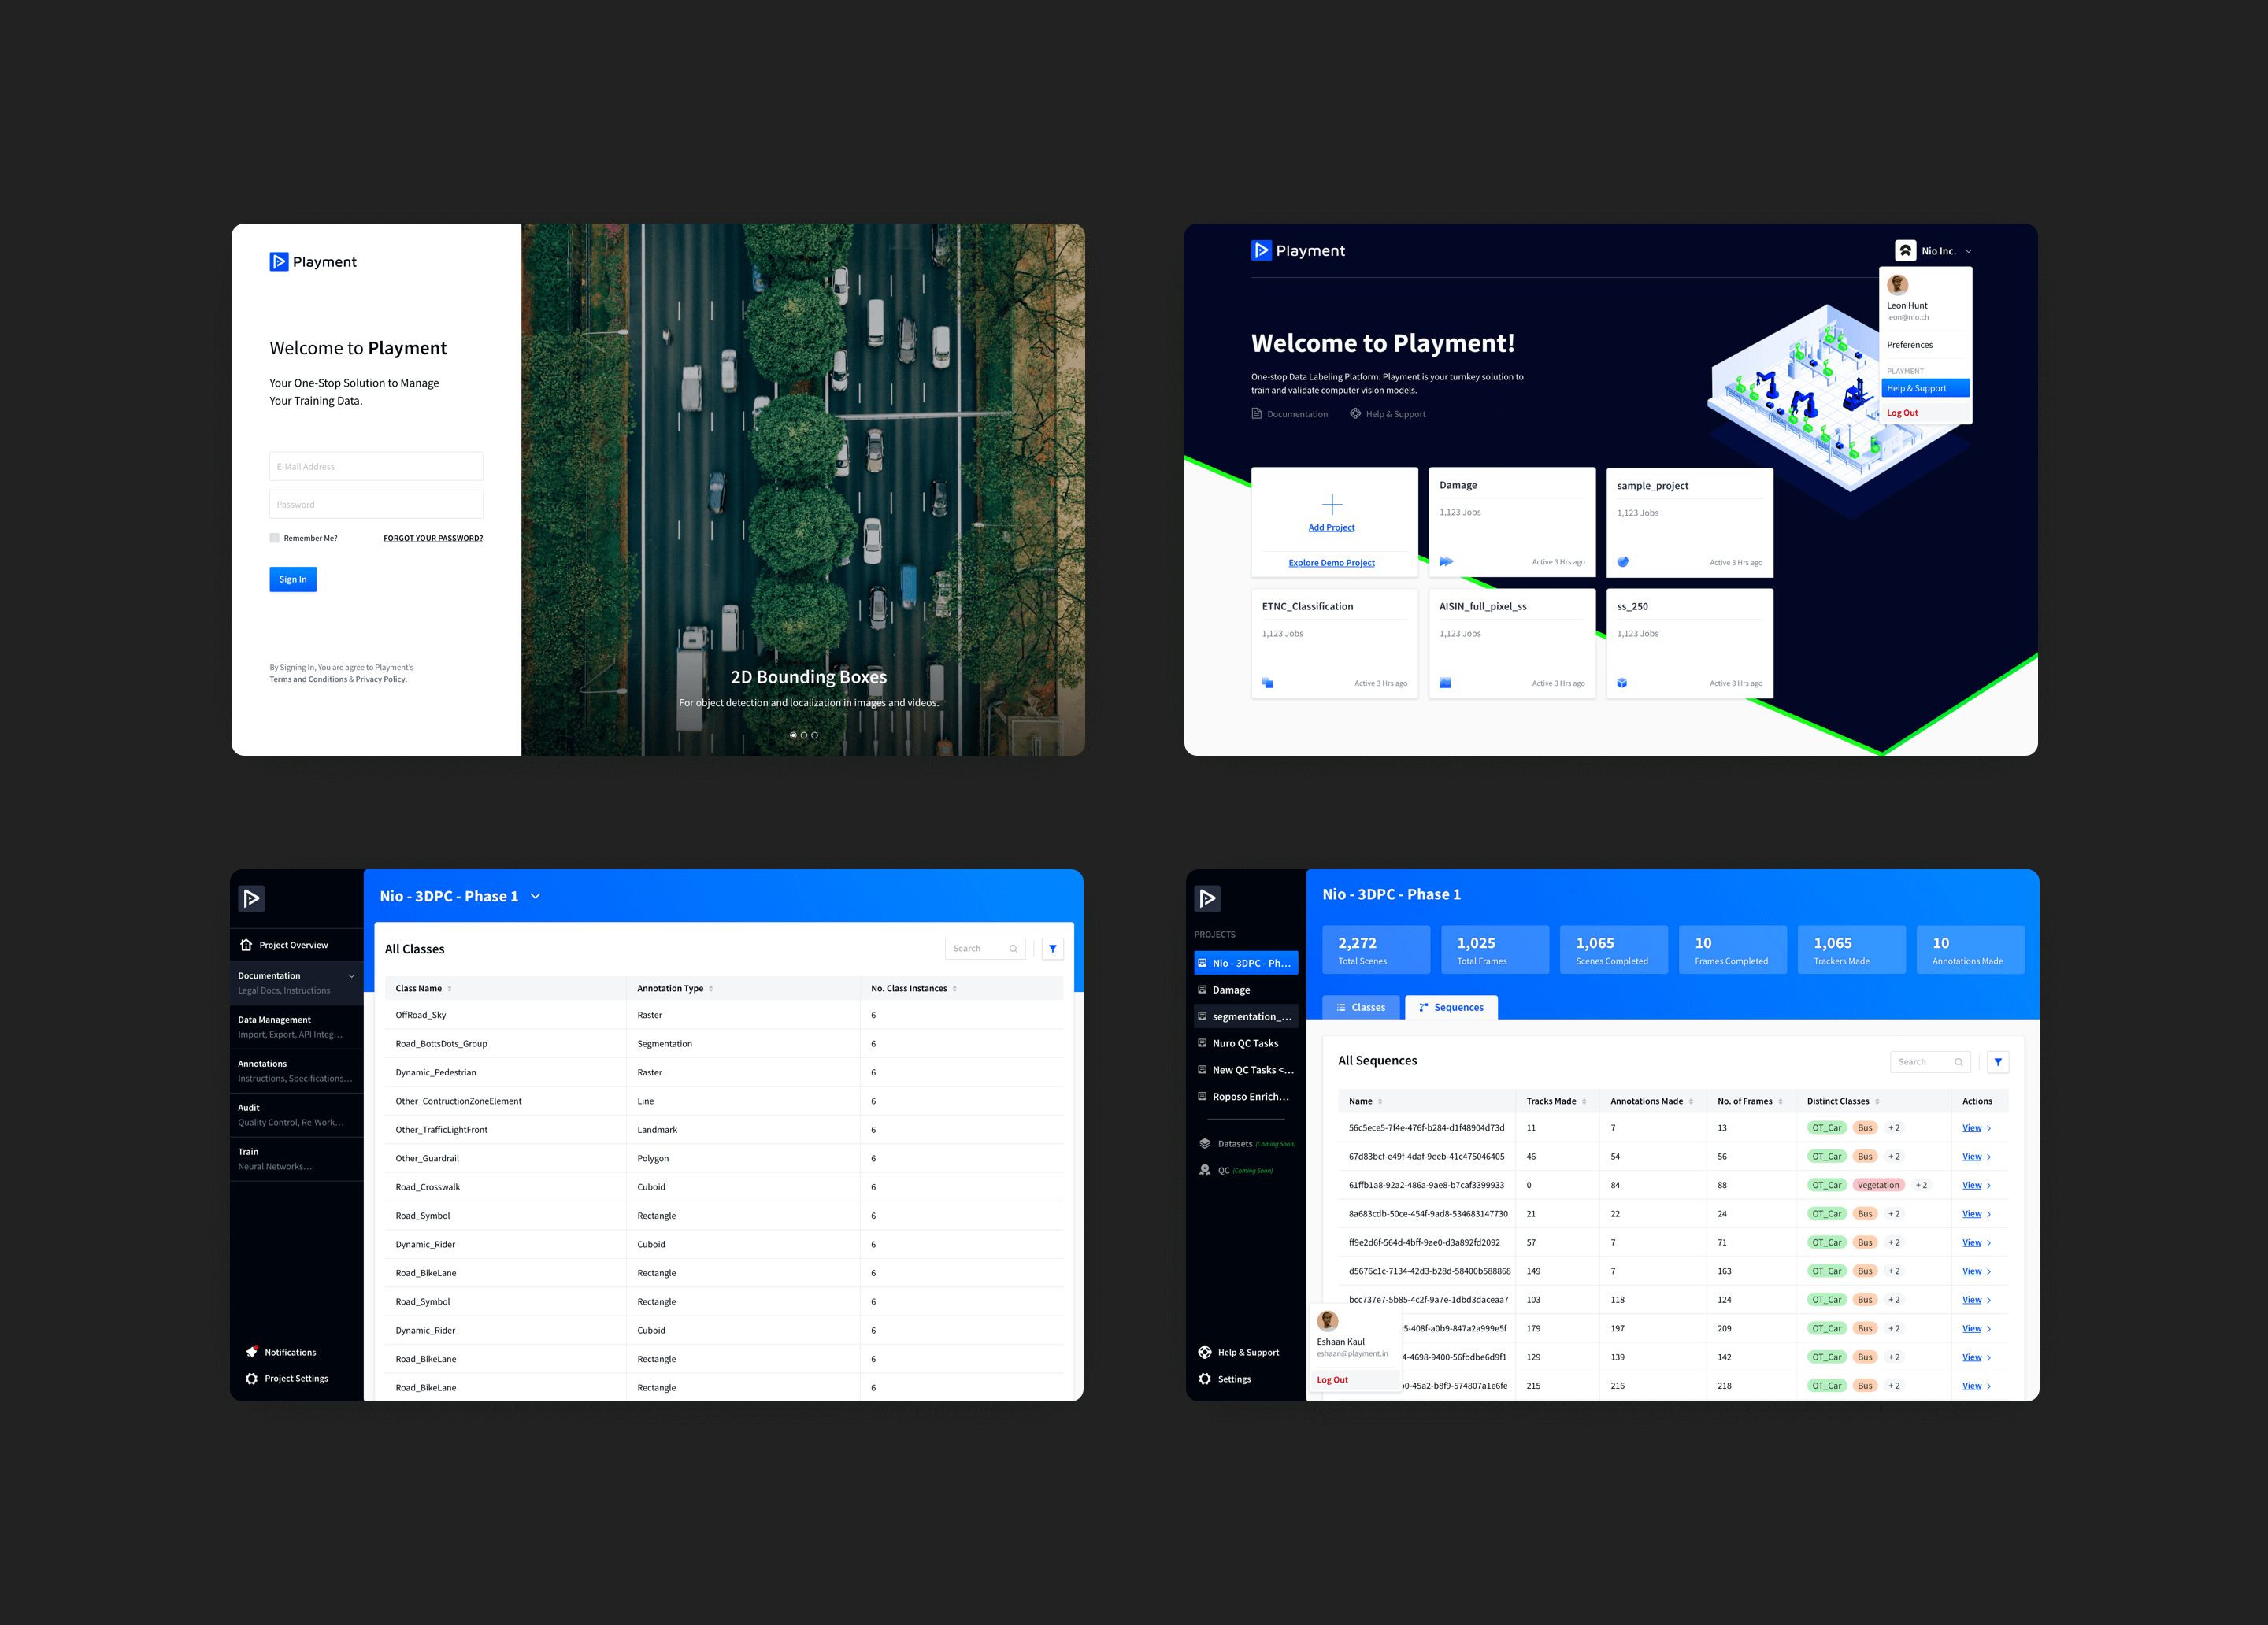 Playment is a fully managed data labeling platform that generates training data for computer vision models at scale using crowdsourcing. Product Design, UX Design